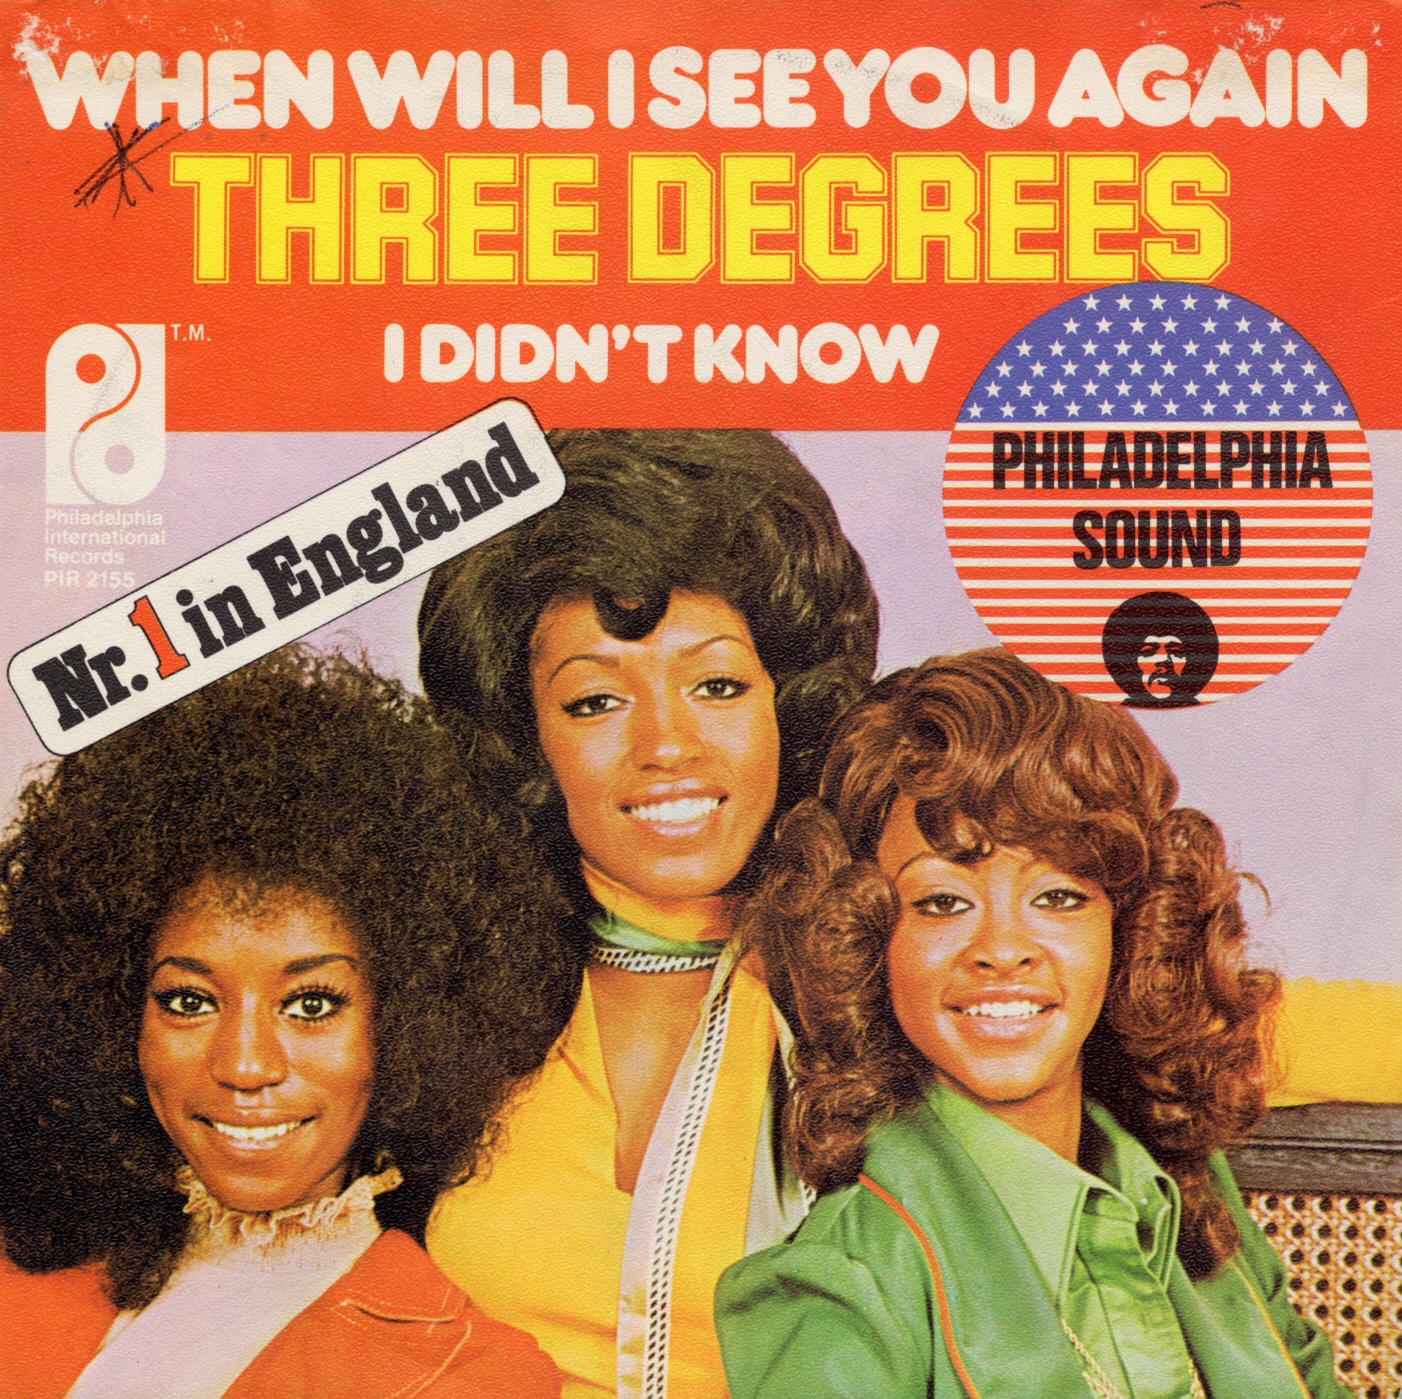 Cover: When will I see you again, The Three Degrees